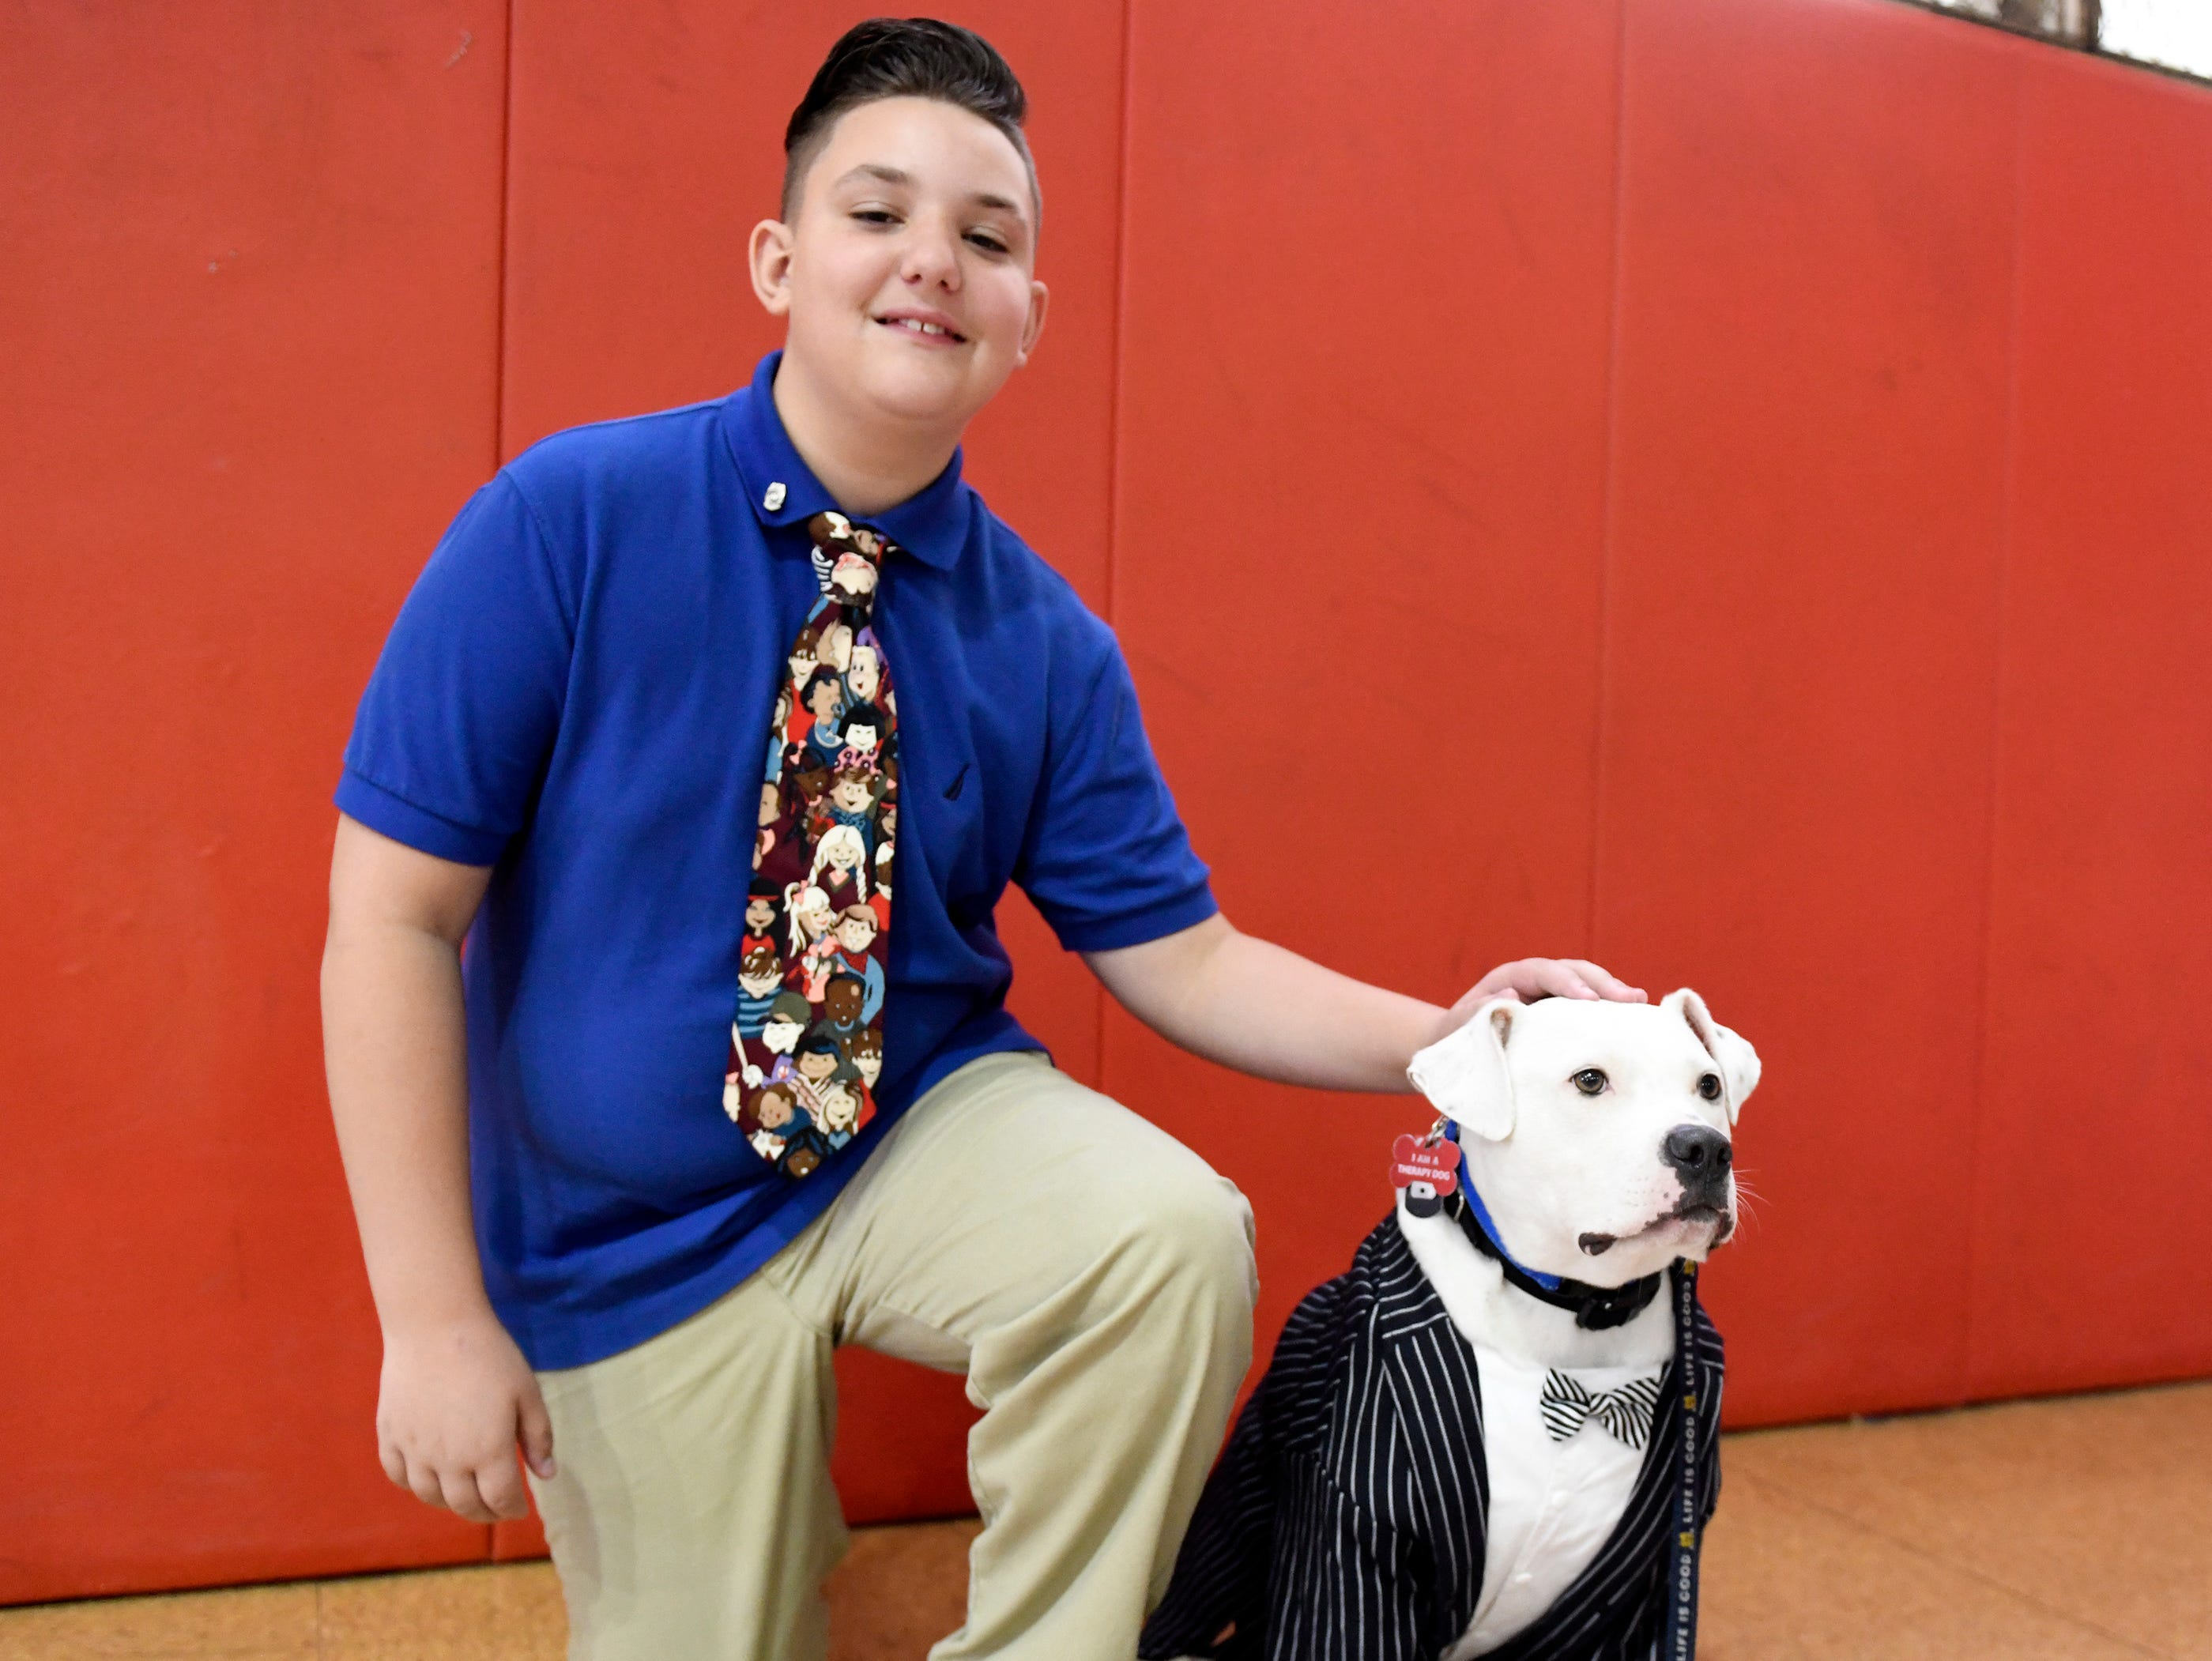 Nicholas Guaciaro pets Mennies Elementary School therapy dog Colefollowing the Giraffe Hero Award ceremony at the Vineland Public School District Administrative Offices on Wednesday, May 15, 2019.